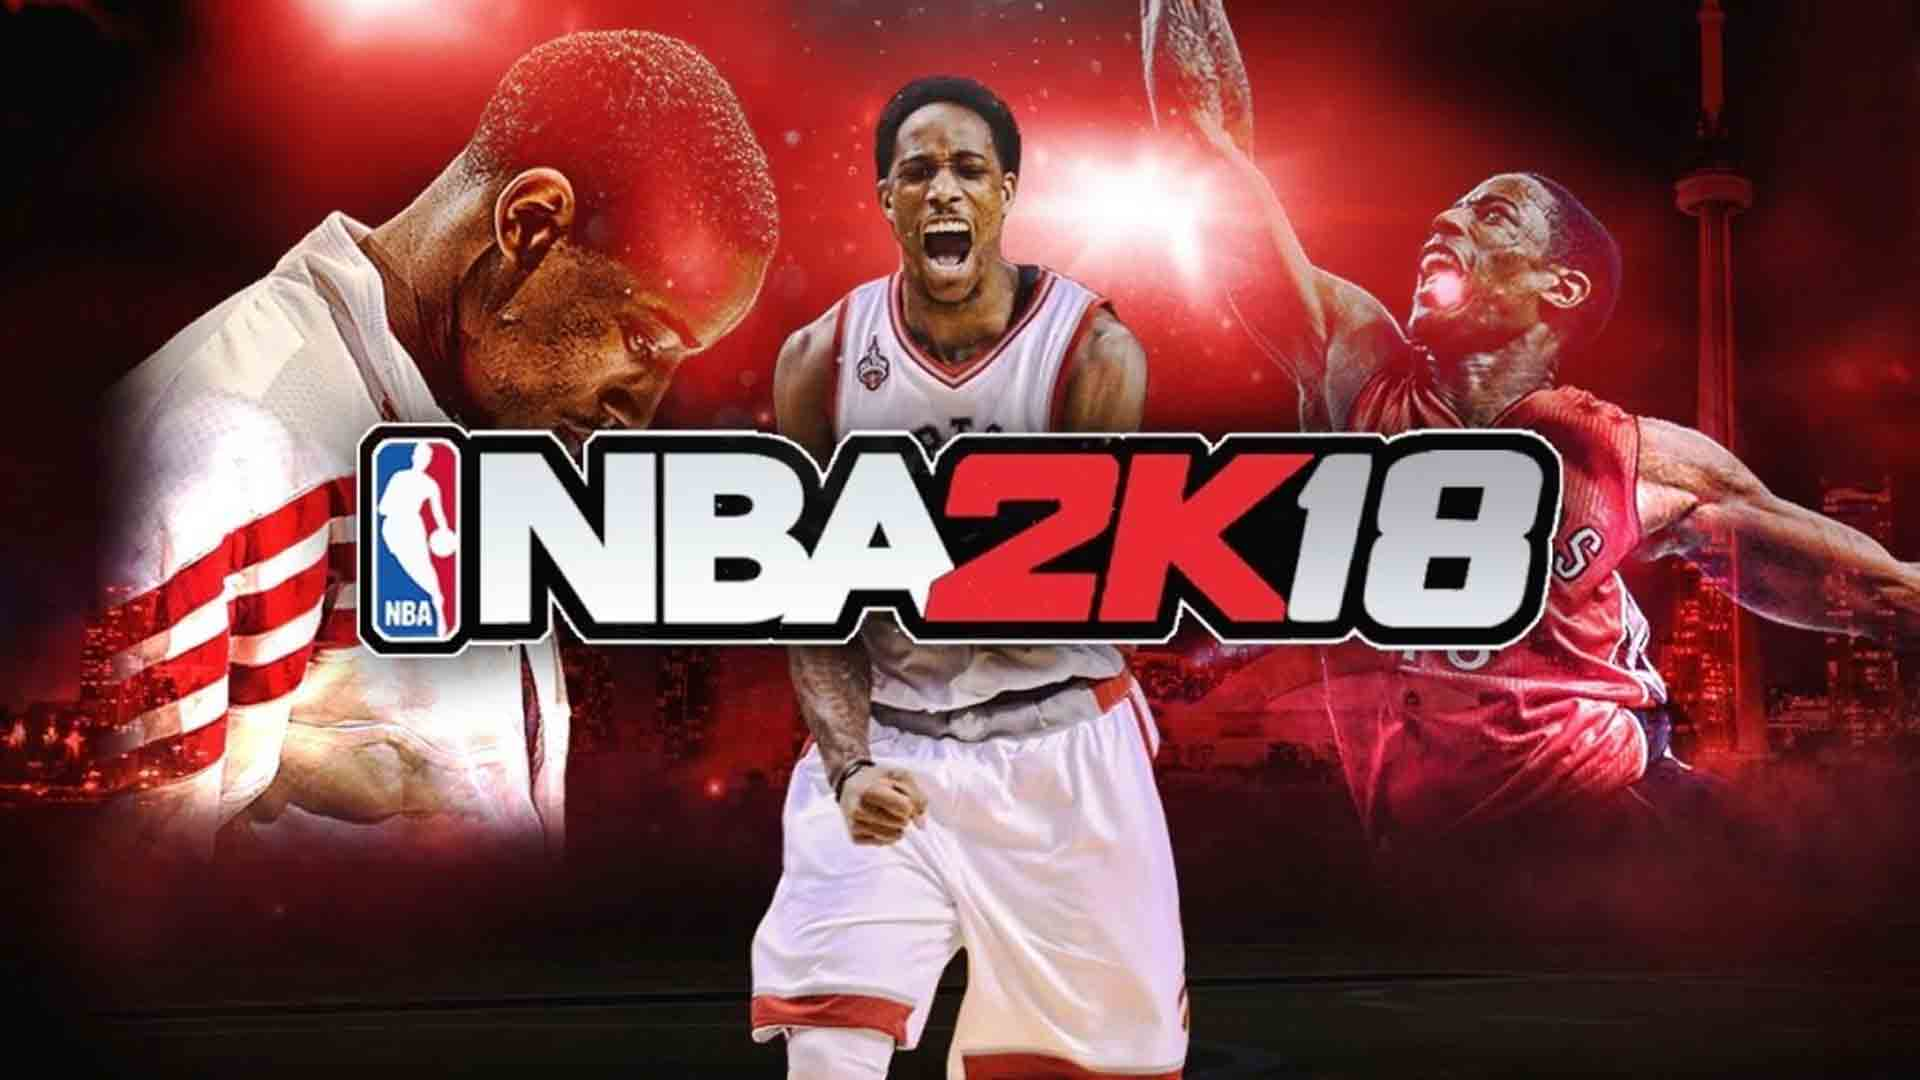 Nba 2k18 For Android - 1920x1080 - Download HD Wallpaper ...